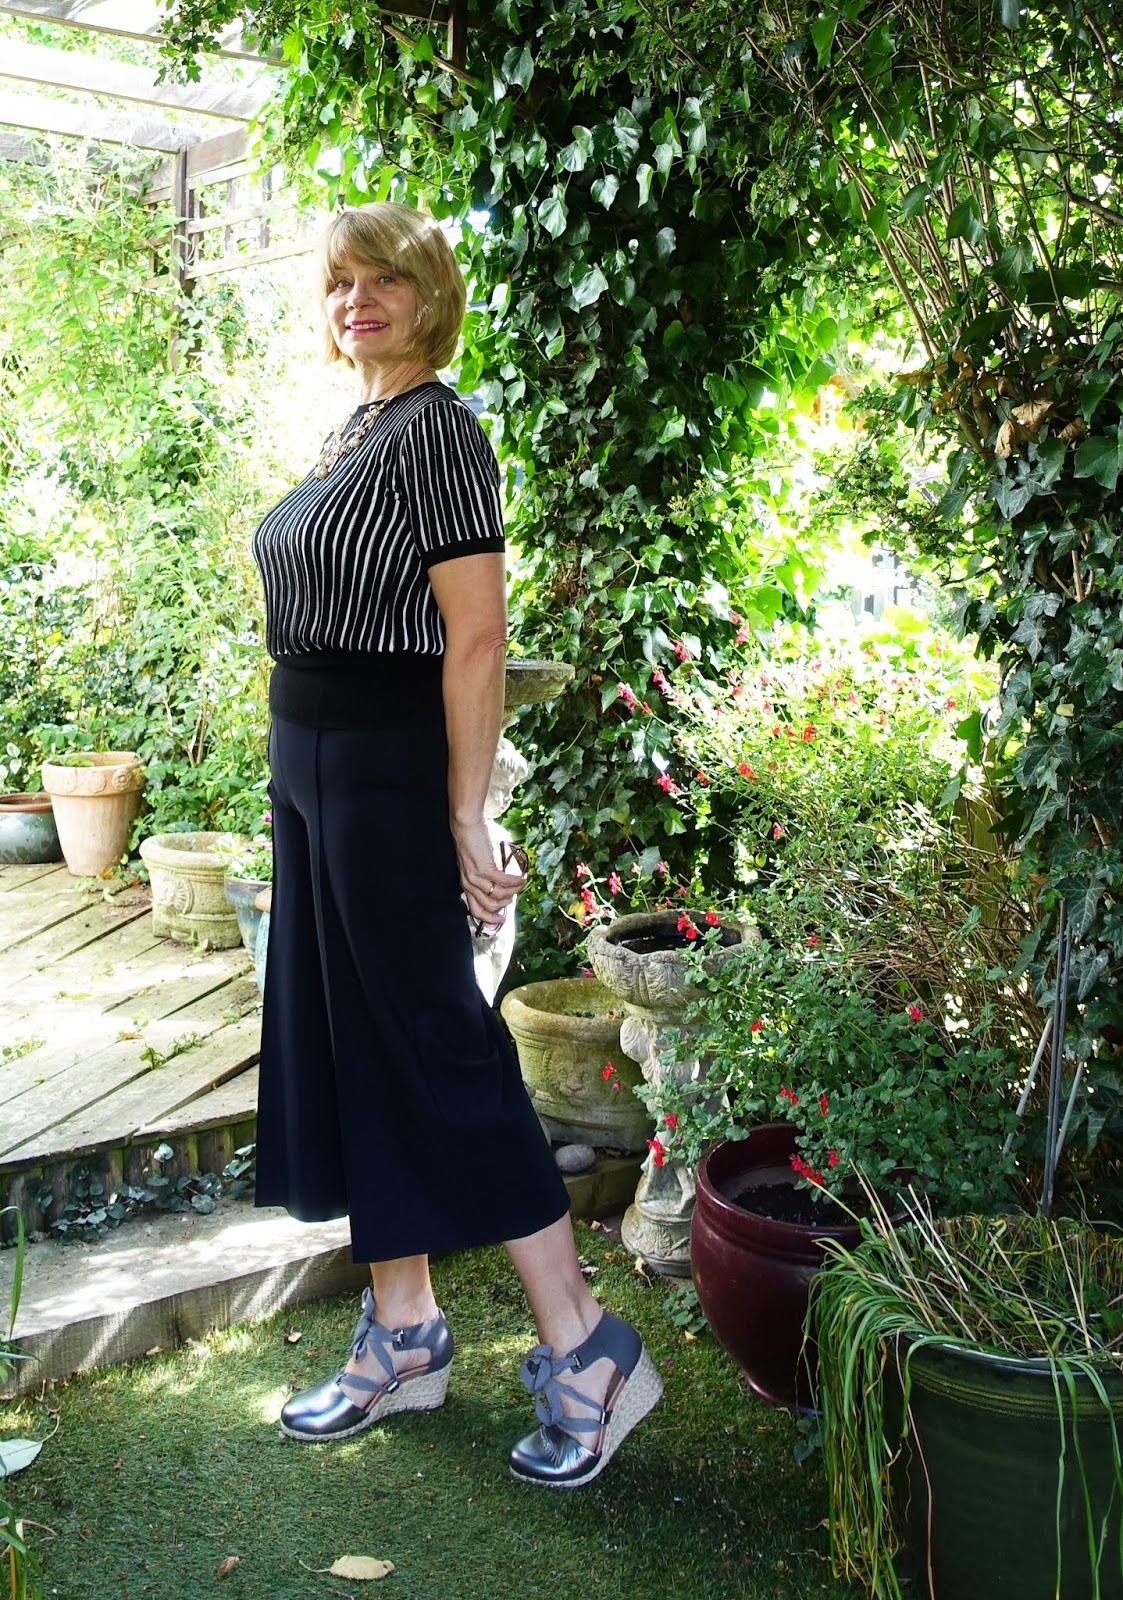 A work wear look featuring Vionic Kaitlyn sandals in pewter grey and black culottes from Hope UK